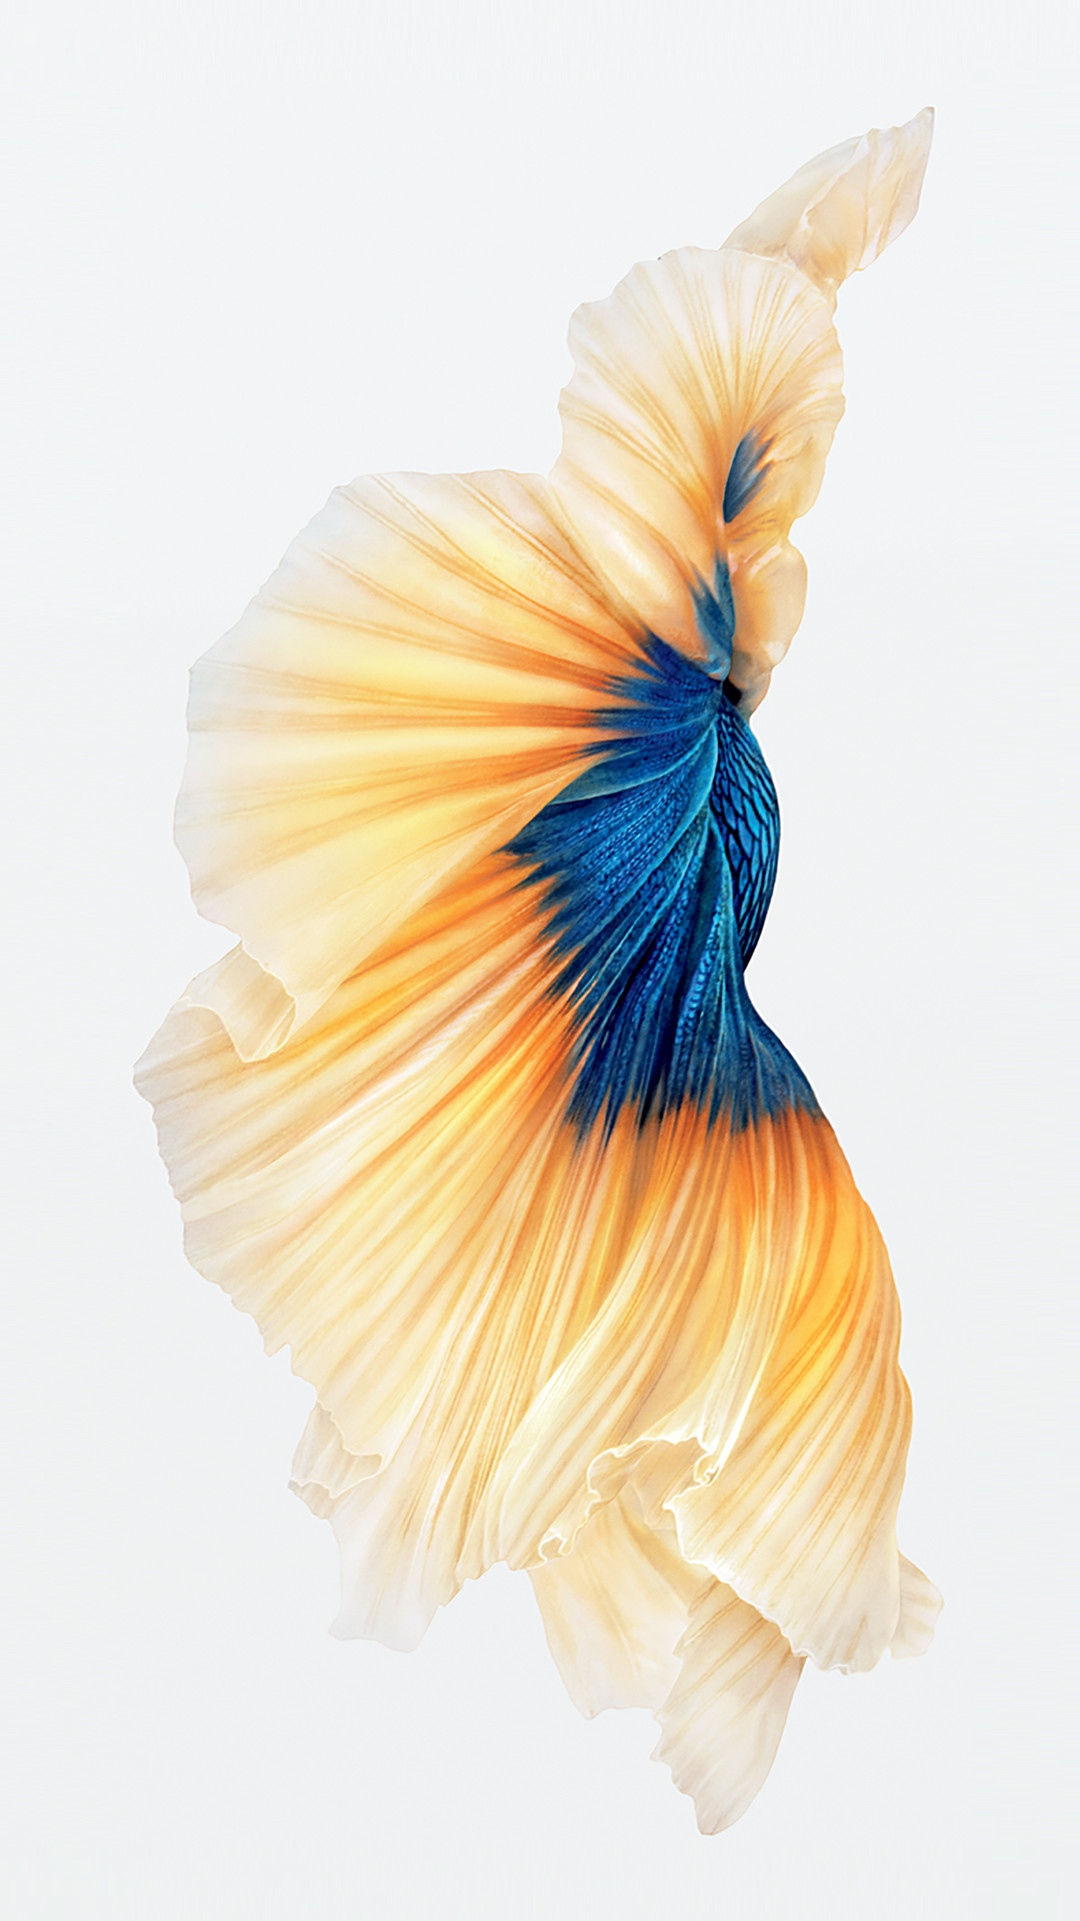 iphone 6s fish wallpapers (75 images)1080x1921 iphone 6s fish gold wallpaper download iphone iphone